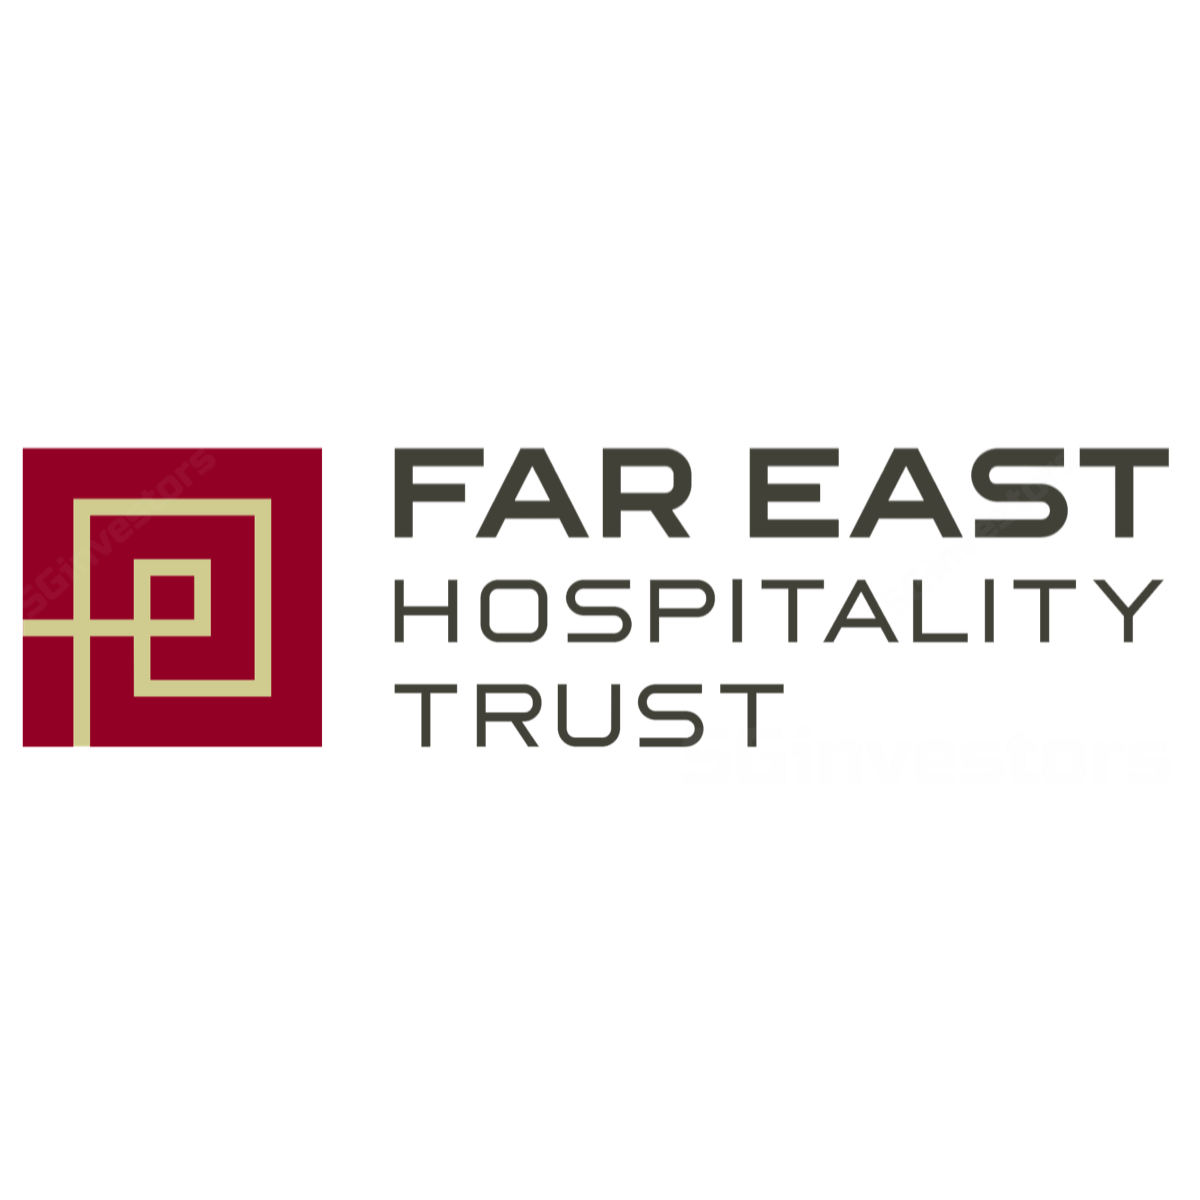 Far East Hospitality Trust - DBS Vickers 2017-08-08: Recovery In Sight